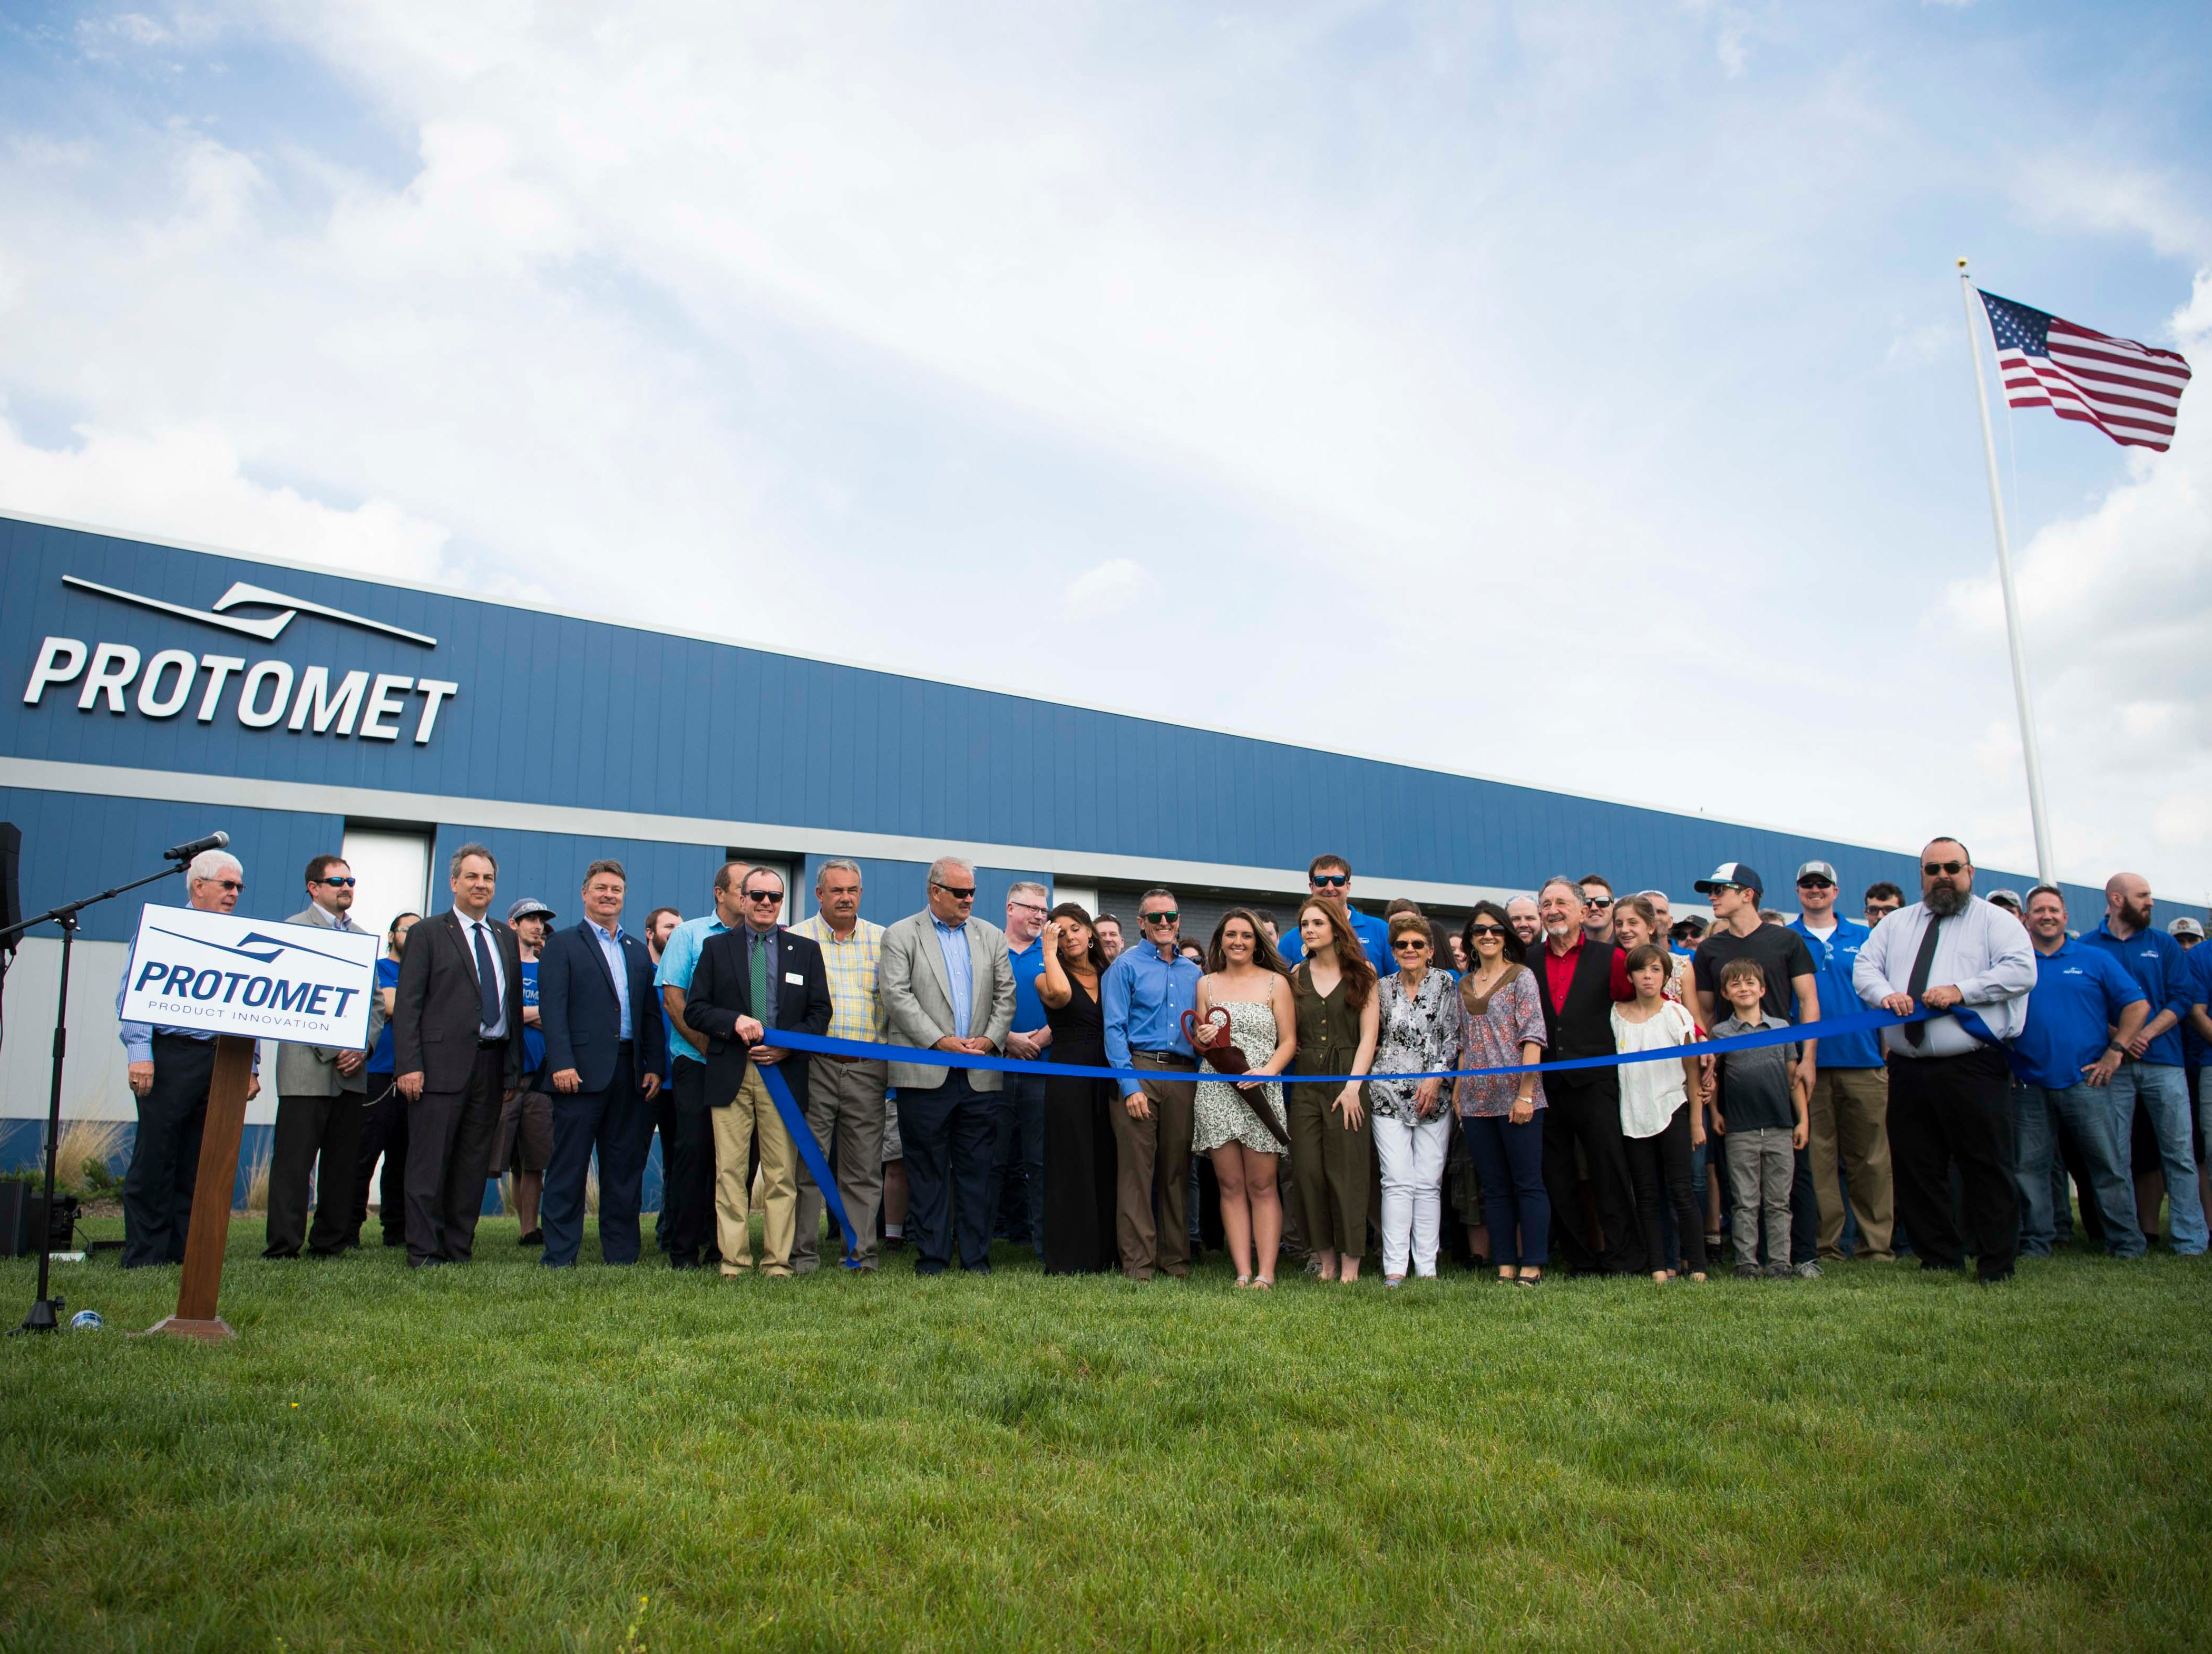 Workers and local officials stand at the ribbon cutting ceremony of Protomet Corporation's $30 million, 244,000 square foot plant in Loudon County Thursday, April 18, 2019. When fully staffed the facility will create 200 new jobs for Loudon County.